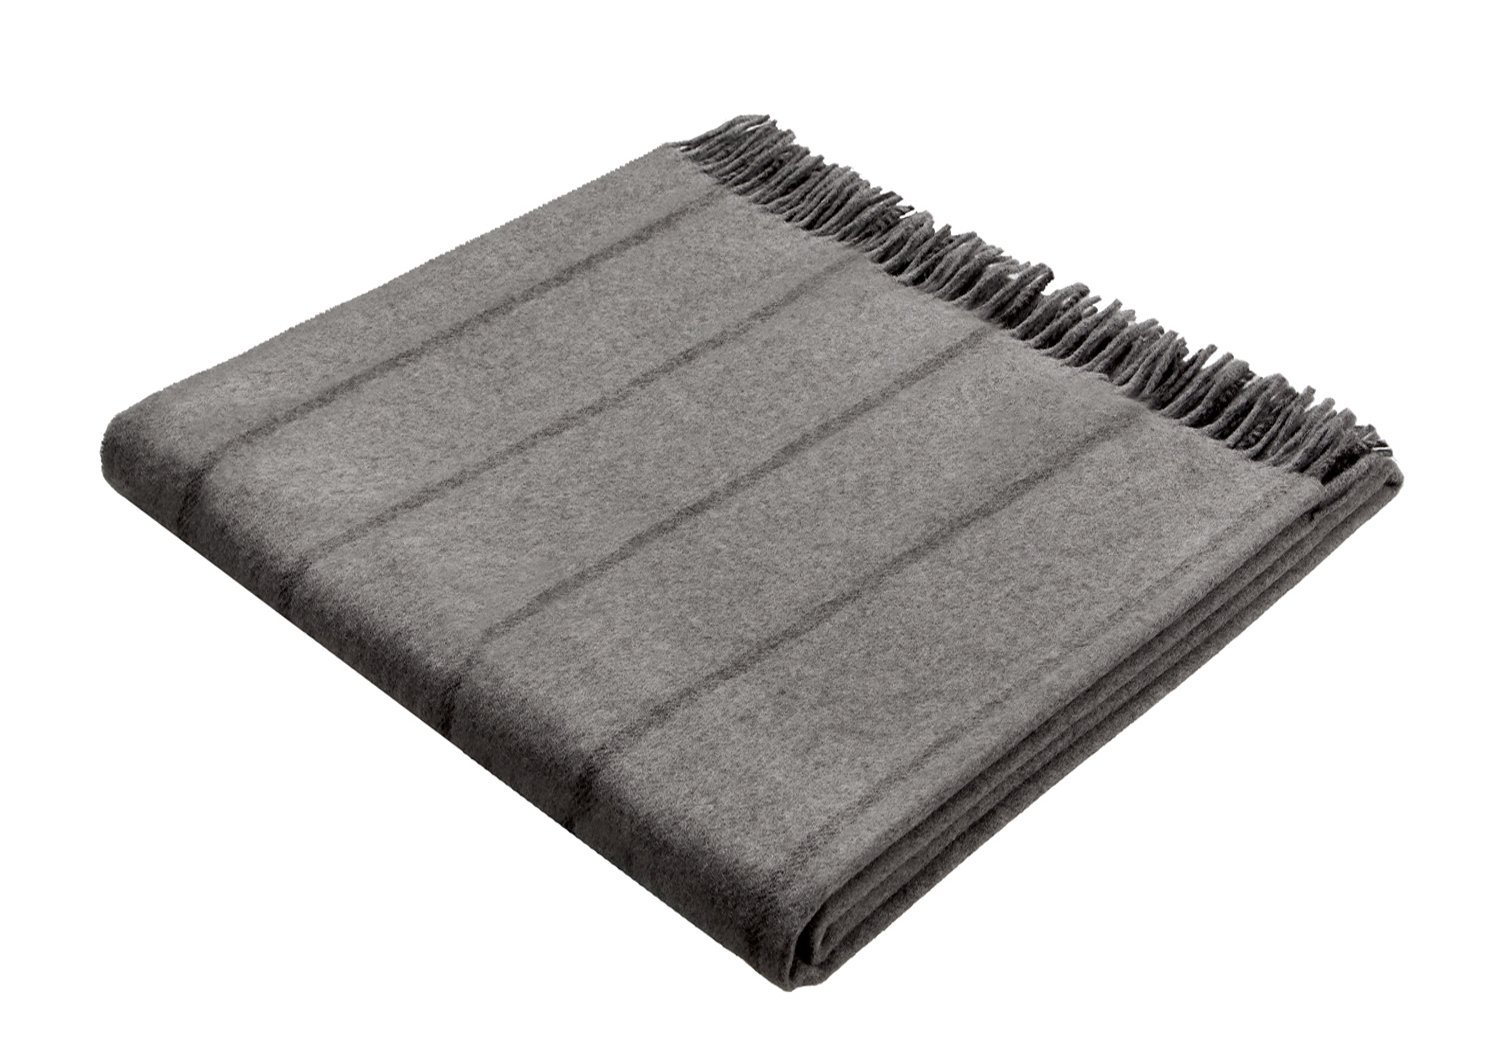 Bocasa 130 x 170 cm Biederlack Cashmere-Plaid Blanket Throw, Berry-Aubergine 648105 648105_1000415-130x170